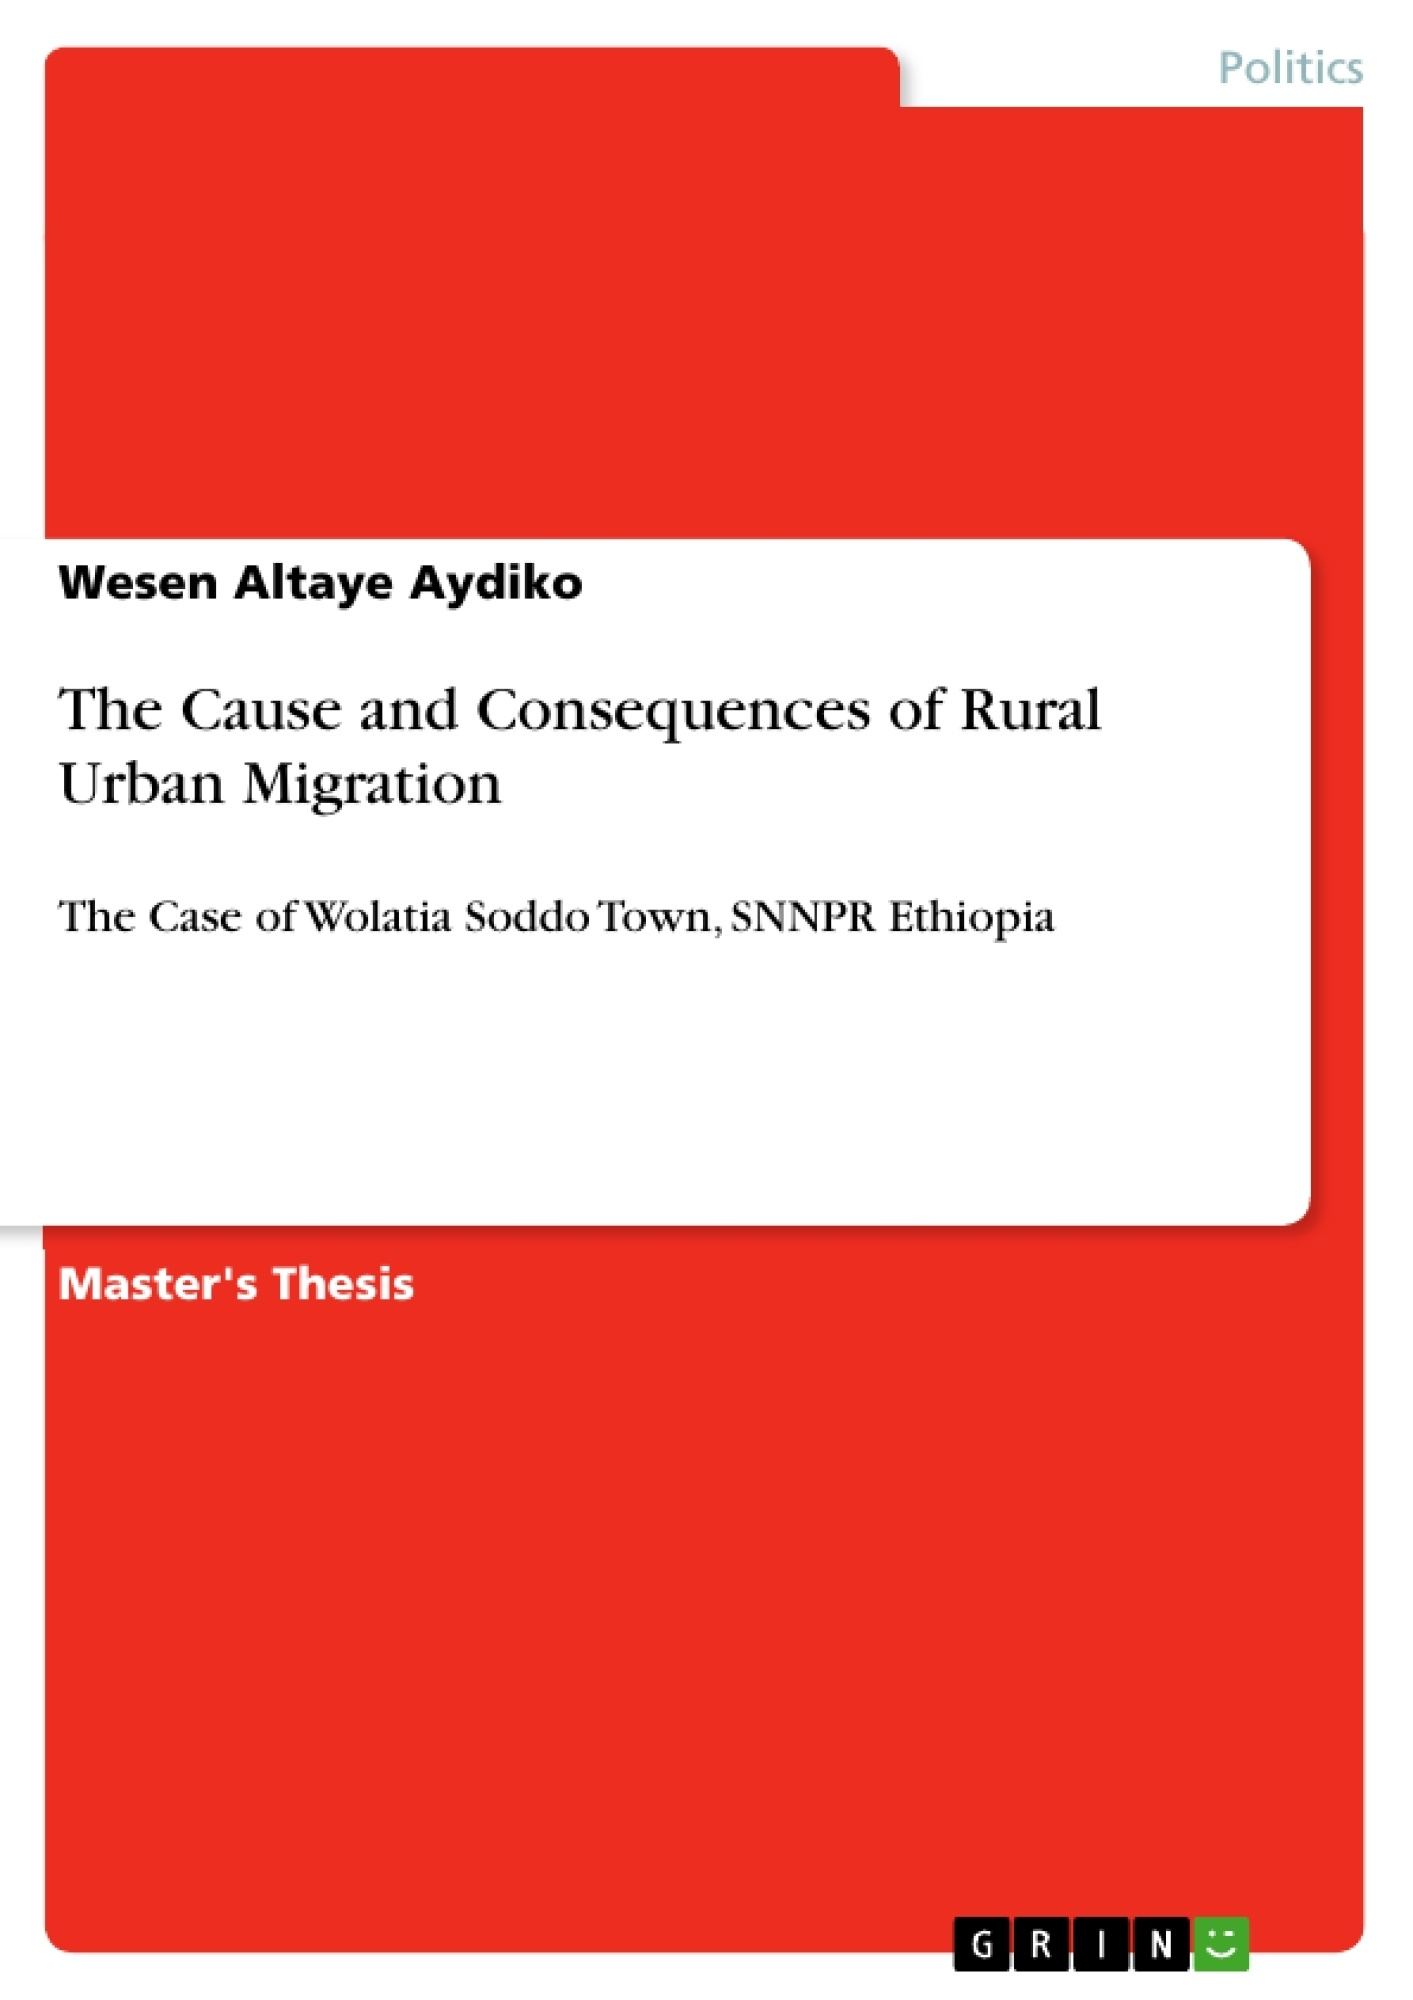 the cause and consequences of rural urban migration publish your the cause and consequences of rural urban migration publish your master s thesis bachelor s thesis essay or term paper